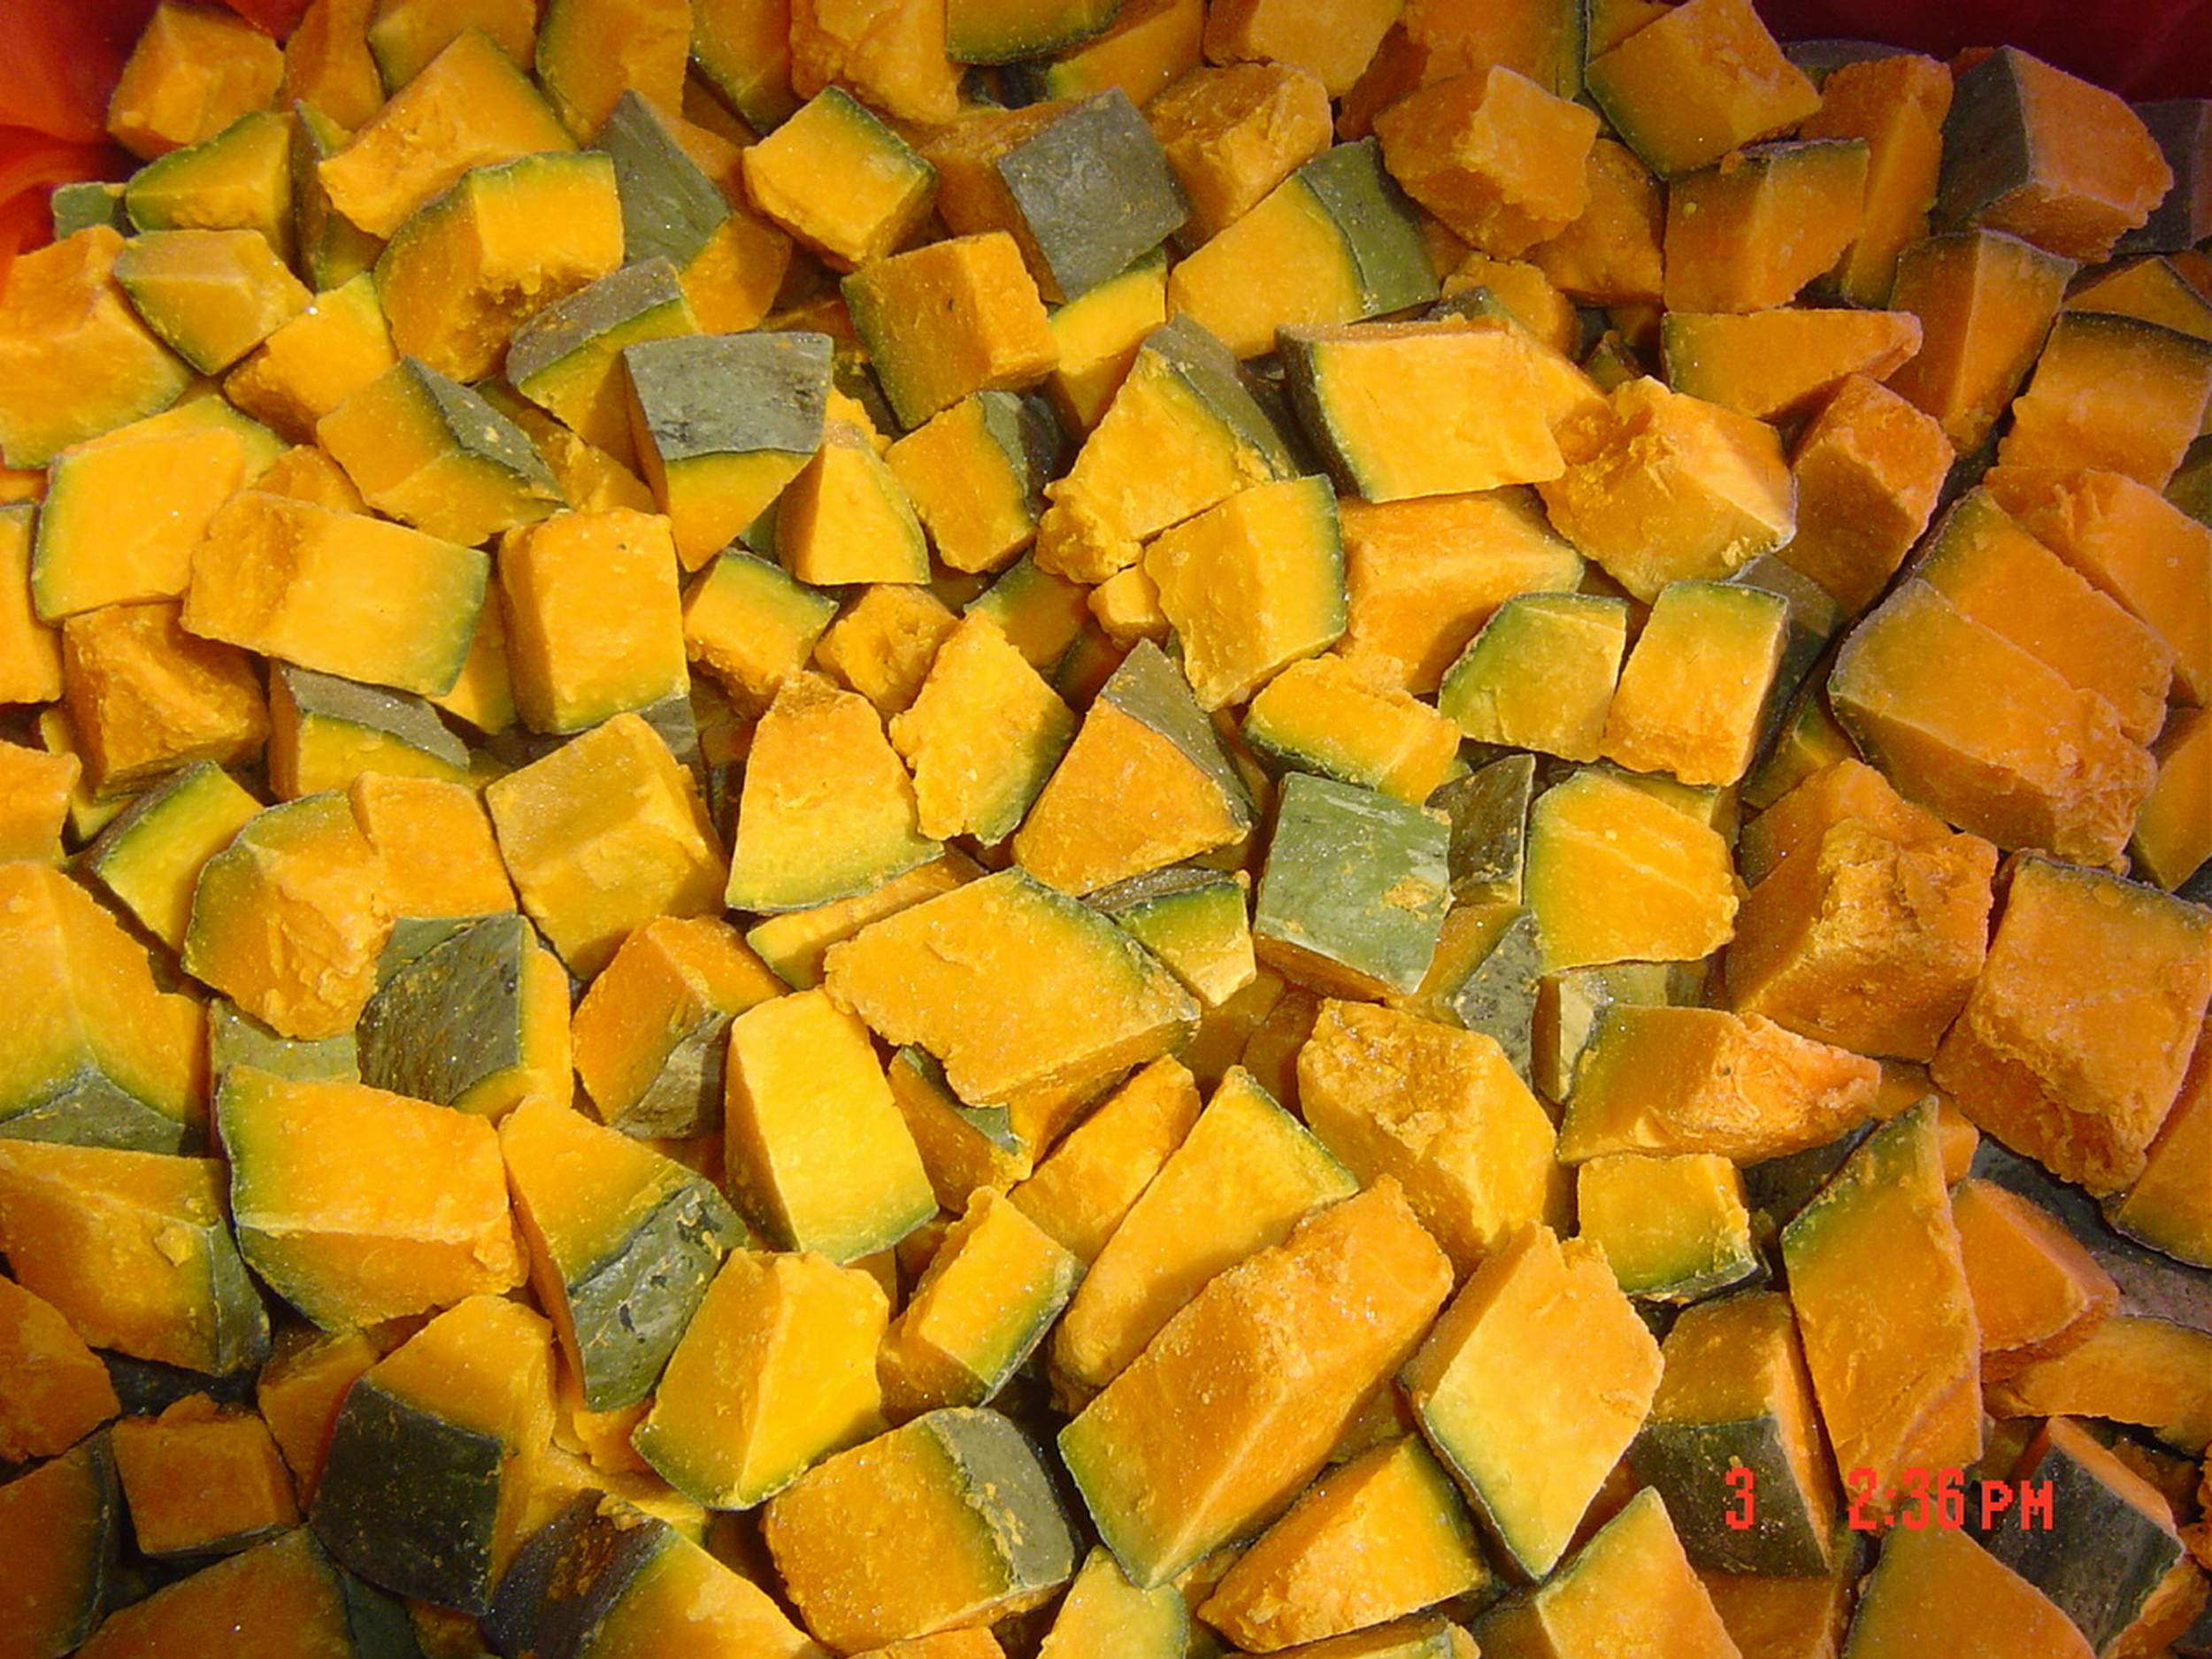 TOP QUALITY! OFFER VIETNAMESE FROZEN PUMPKIN WITH HIGH QUALITY AND BEST PRICE in 2020